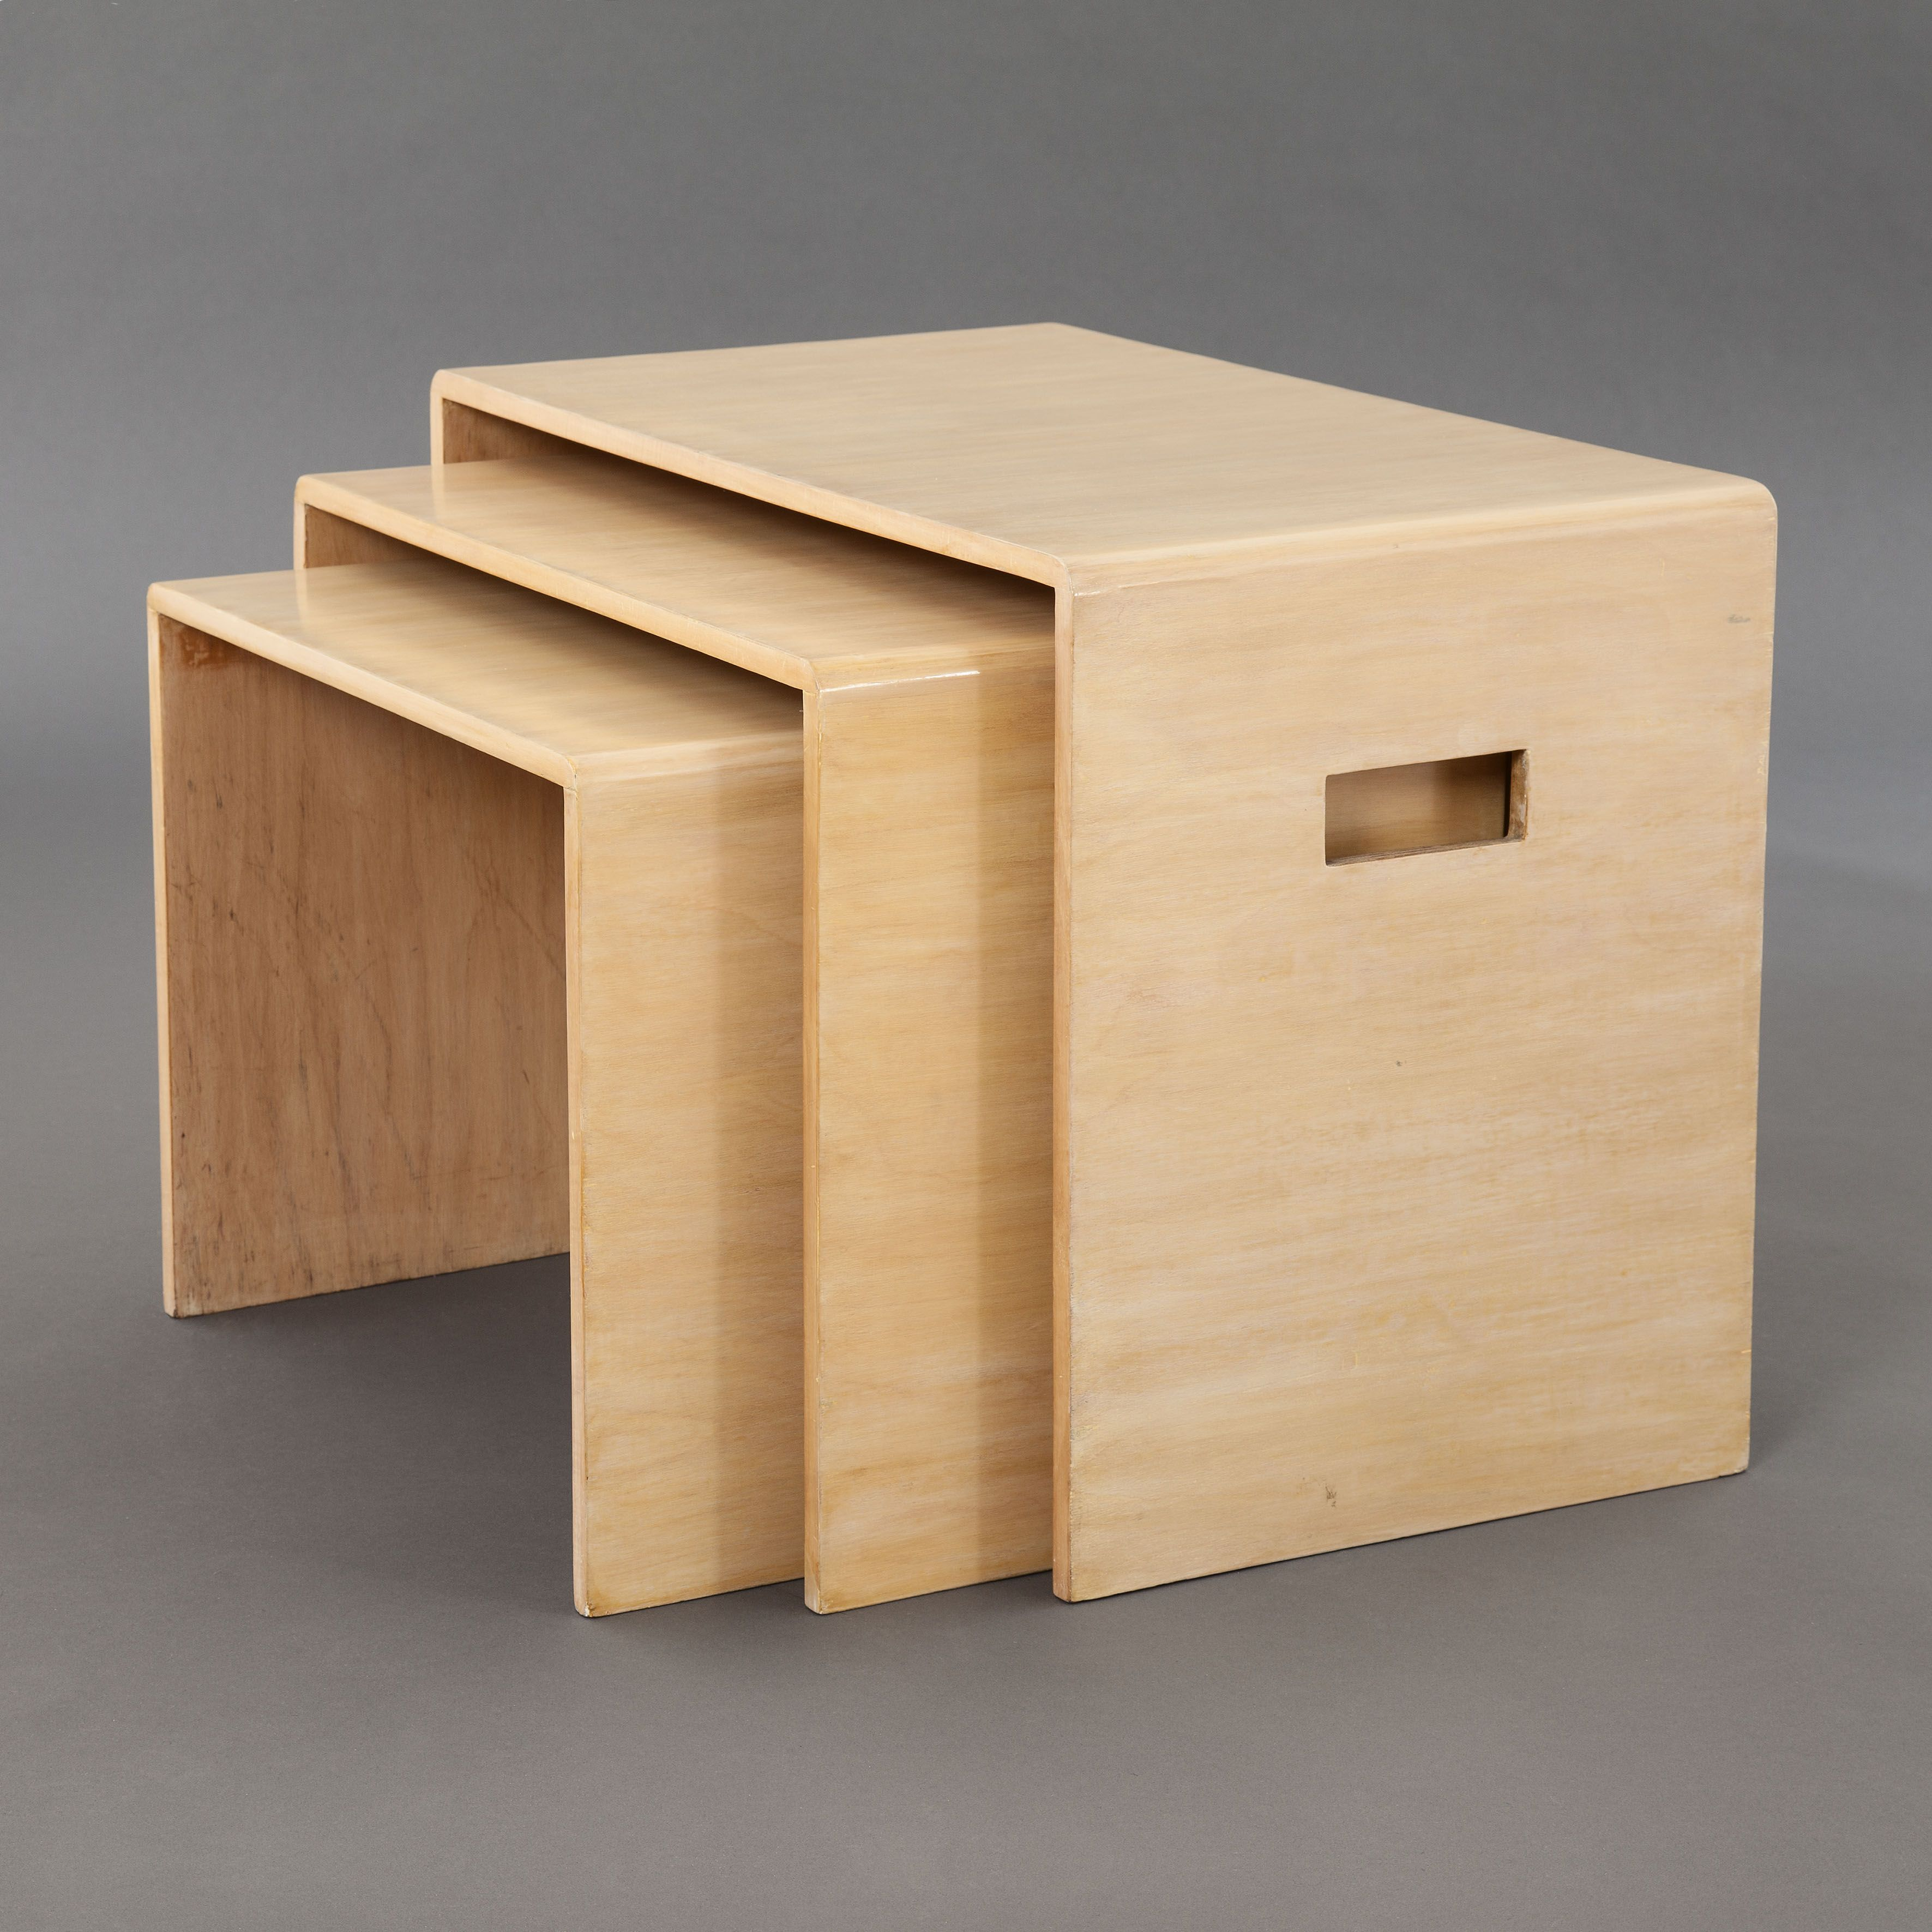 Furniture Box Gerald Summers Birch Plywood Nesting Tables For Makers Of Simple